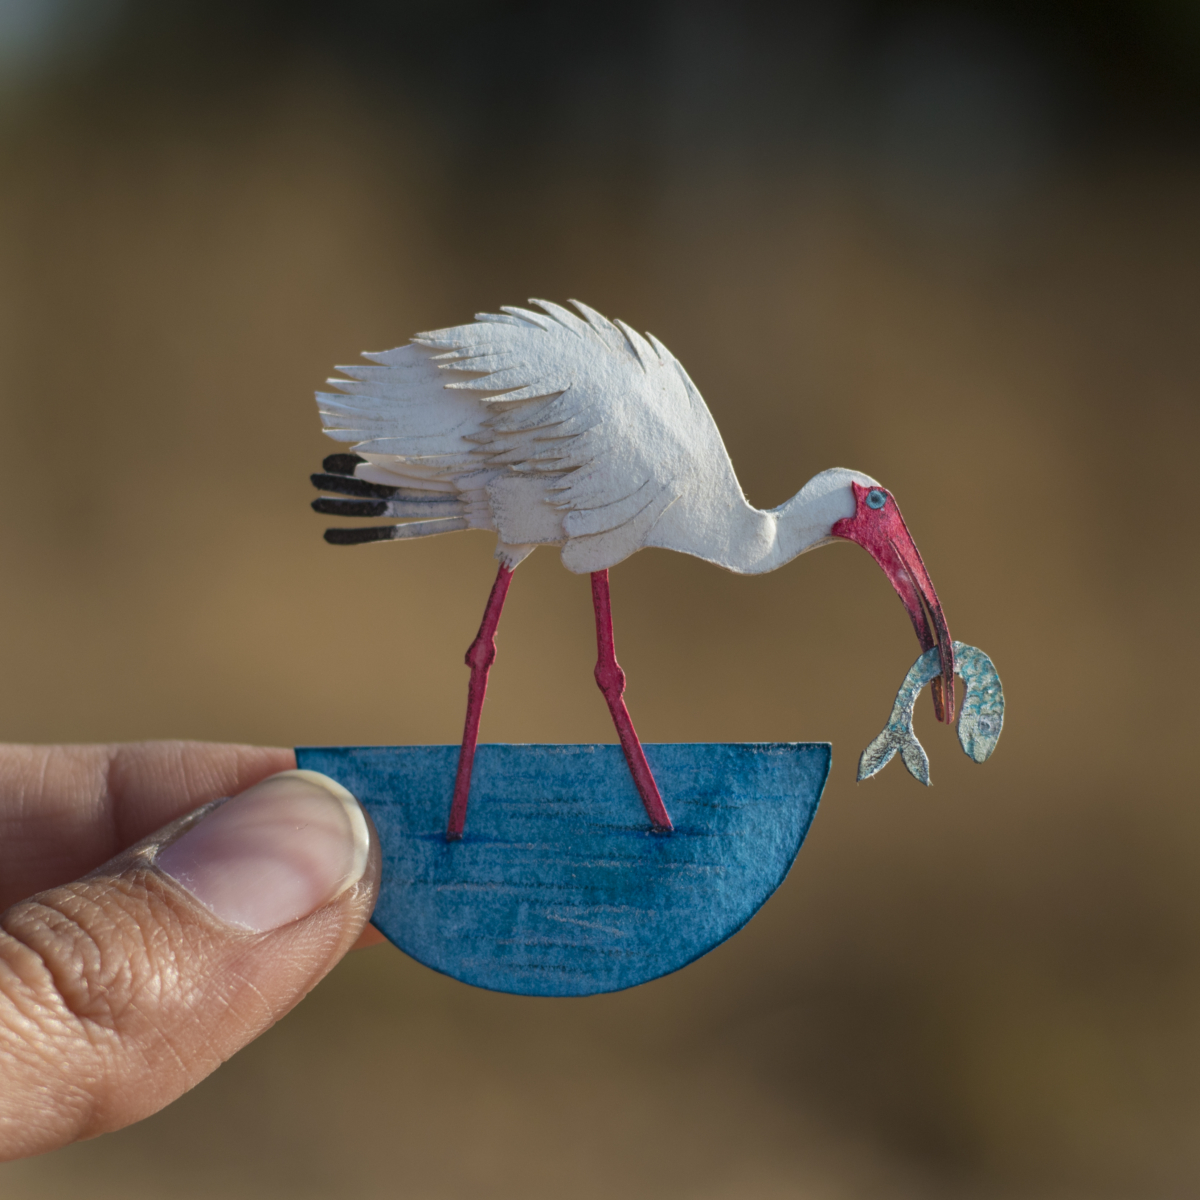 Paper Bird Sculpture Intricate Miniature Paper Bird Art By Nayan And Vaishali